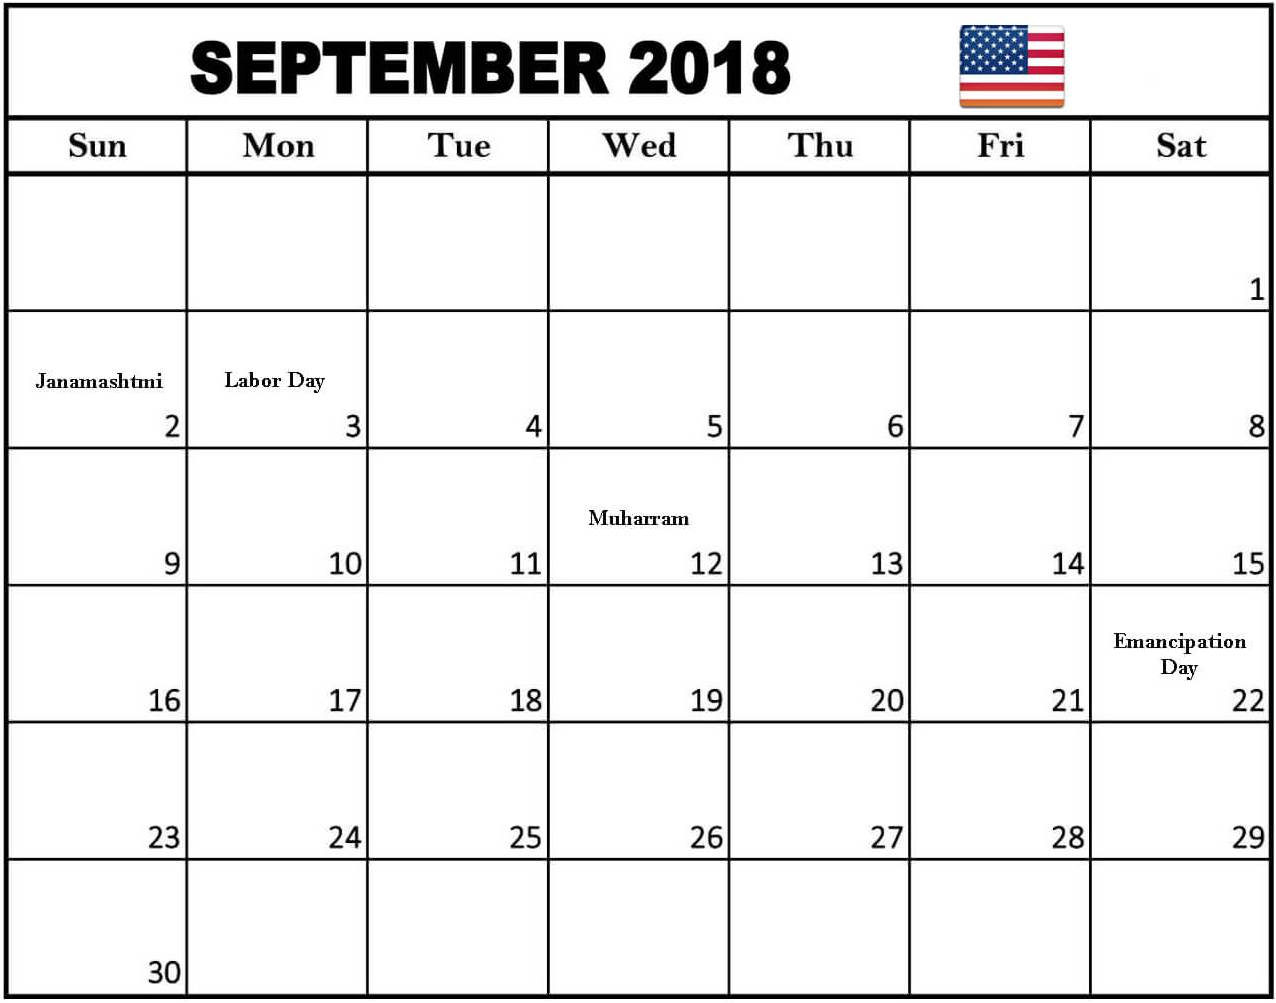 September 2018 Calendar New Zealand National Holidays